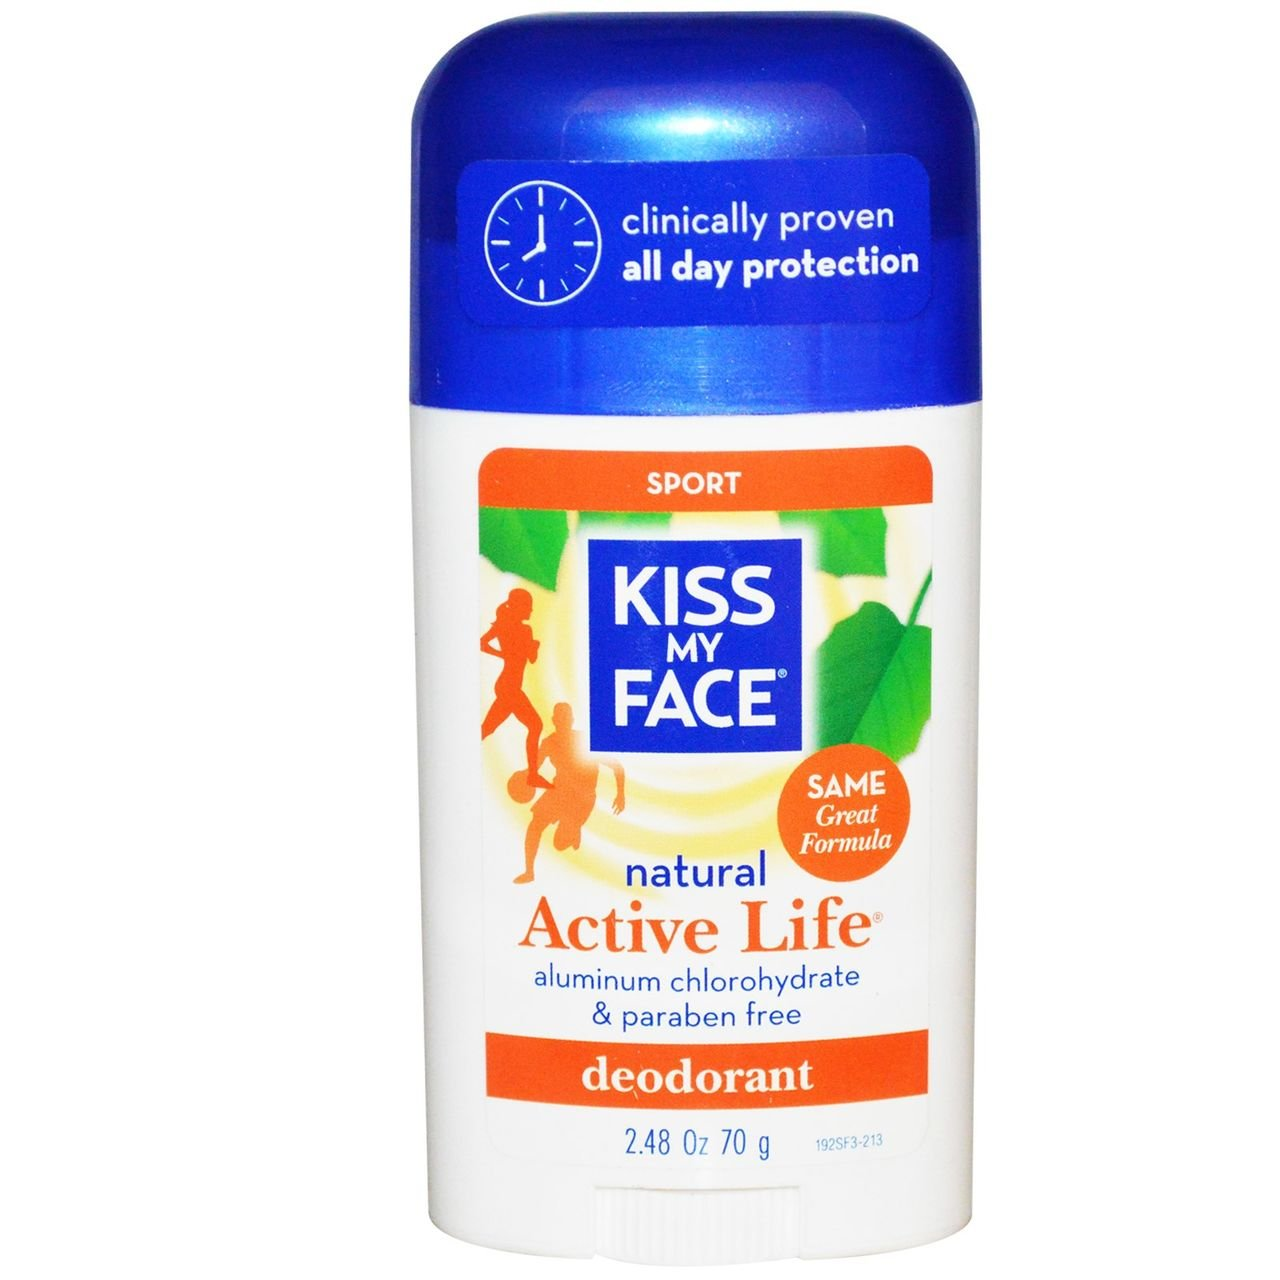 Kiss My Face Active Life Deodorant, Sport, 2.48-Ounce Stick, 1 Count 1900246